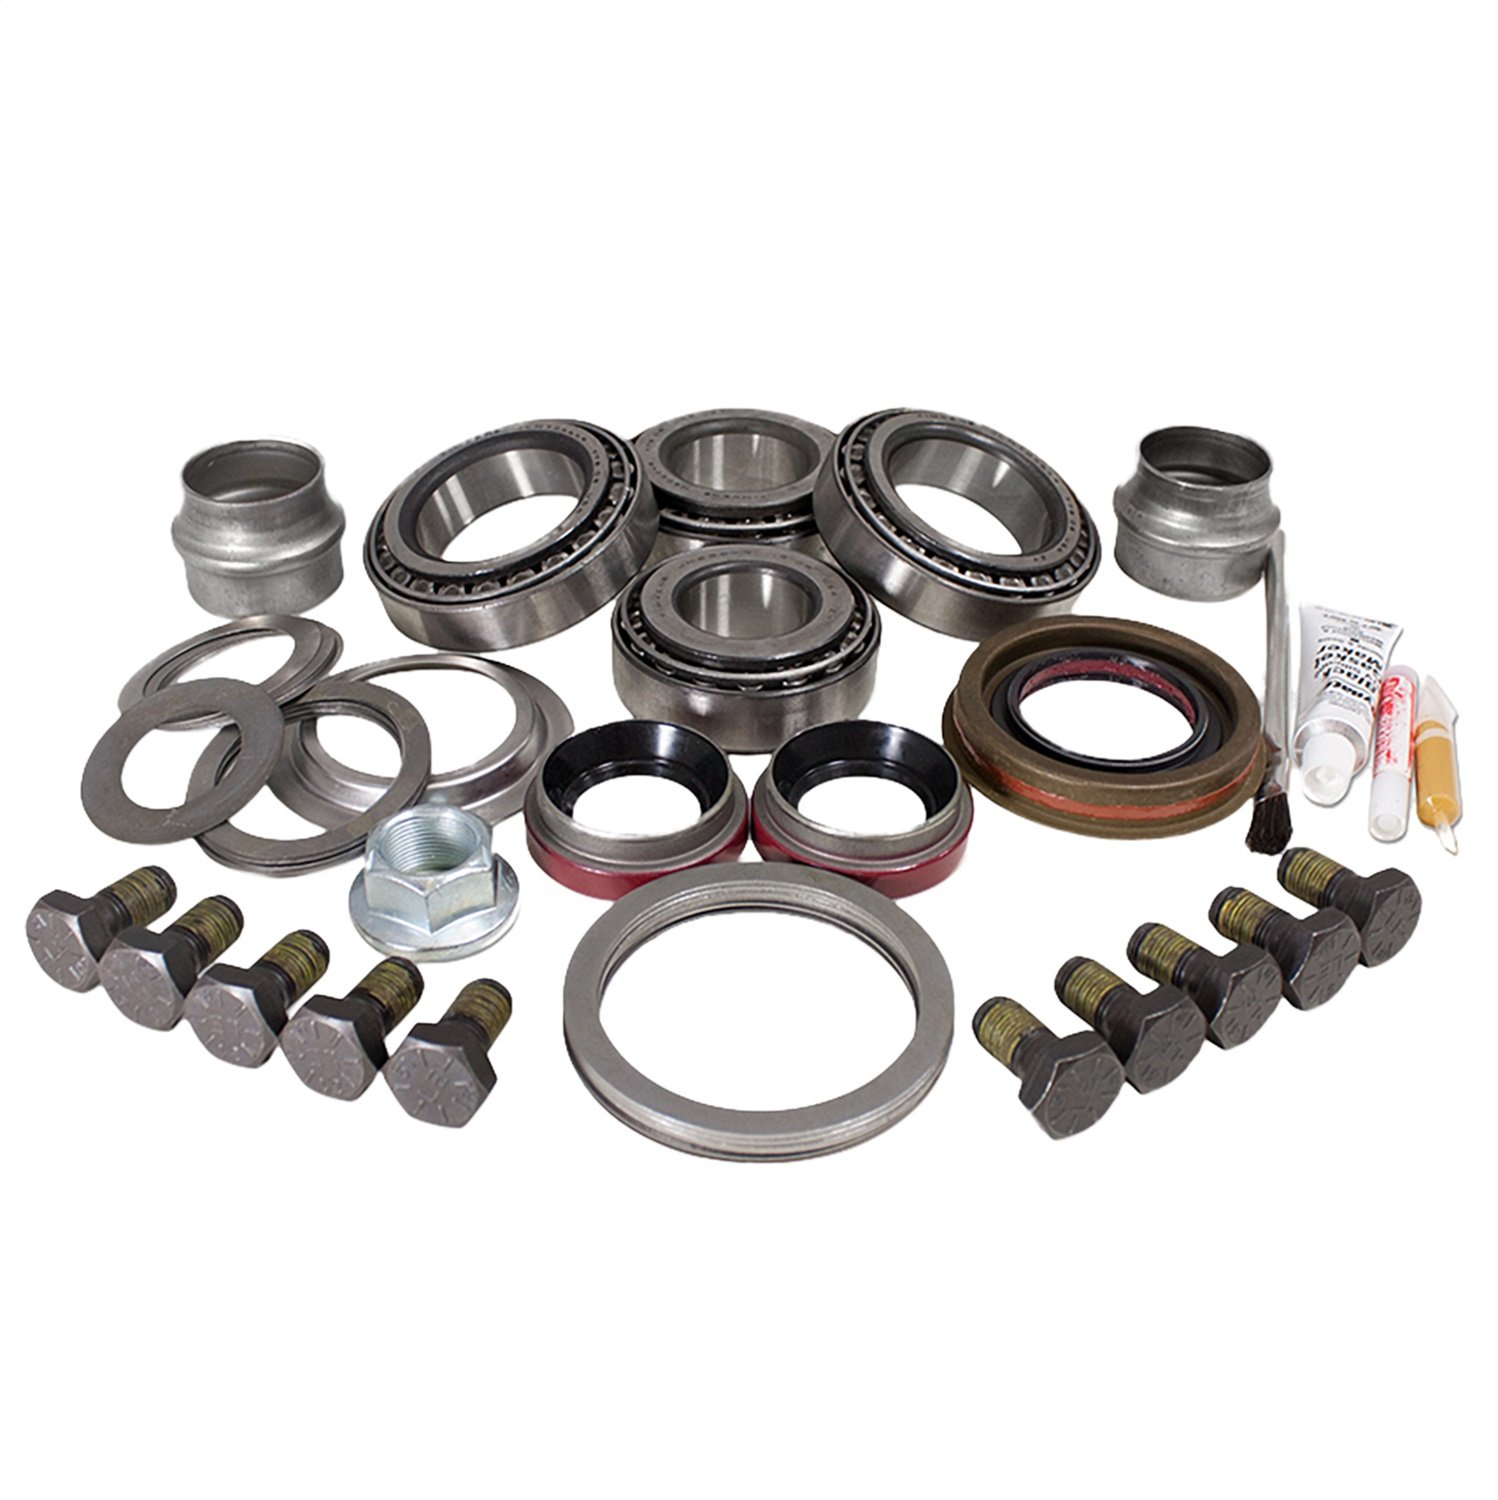 USA Standard Gear (ZK D44-JK-REV-RUB) Master Overhaul Kit for Jeep JK Rubicon Dana 44 Front Differential